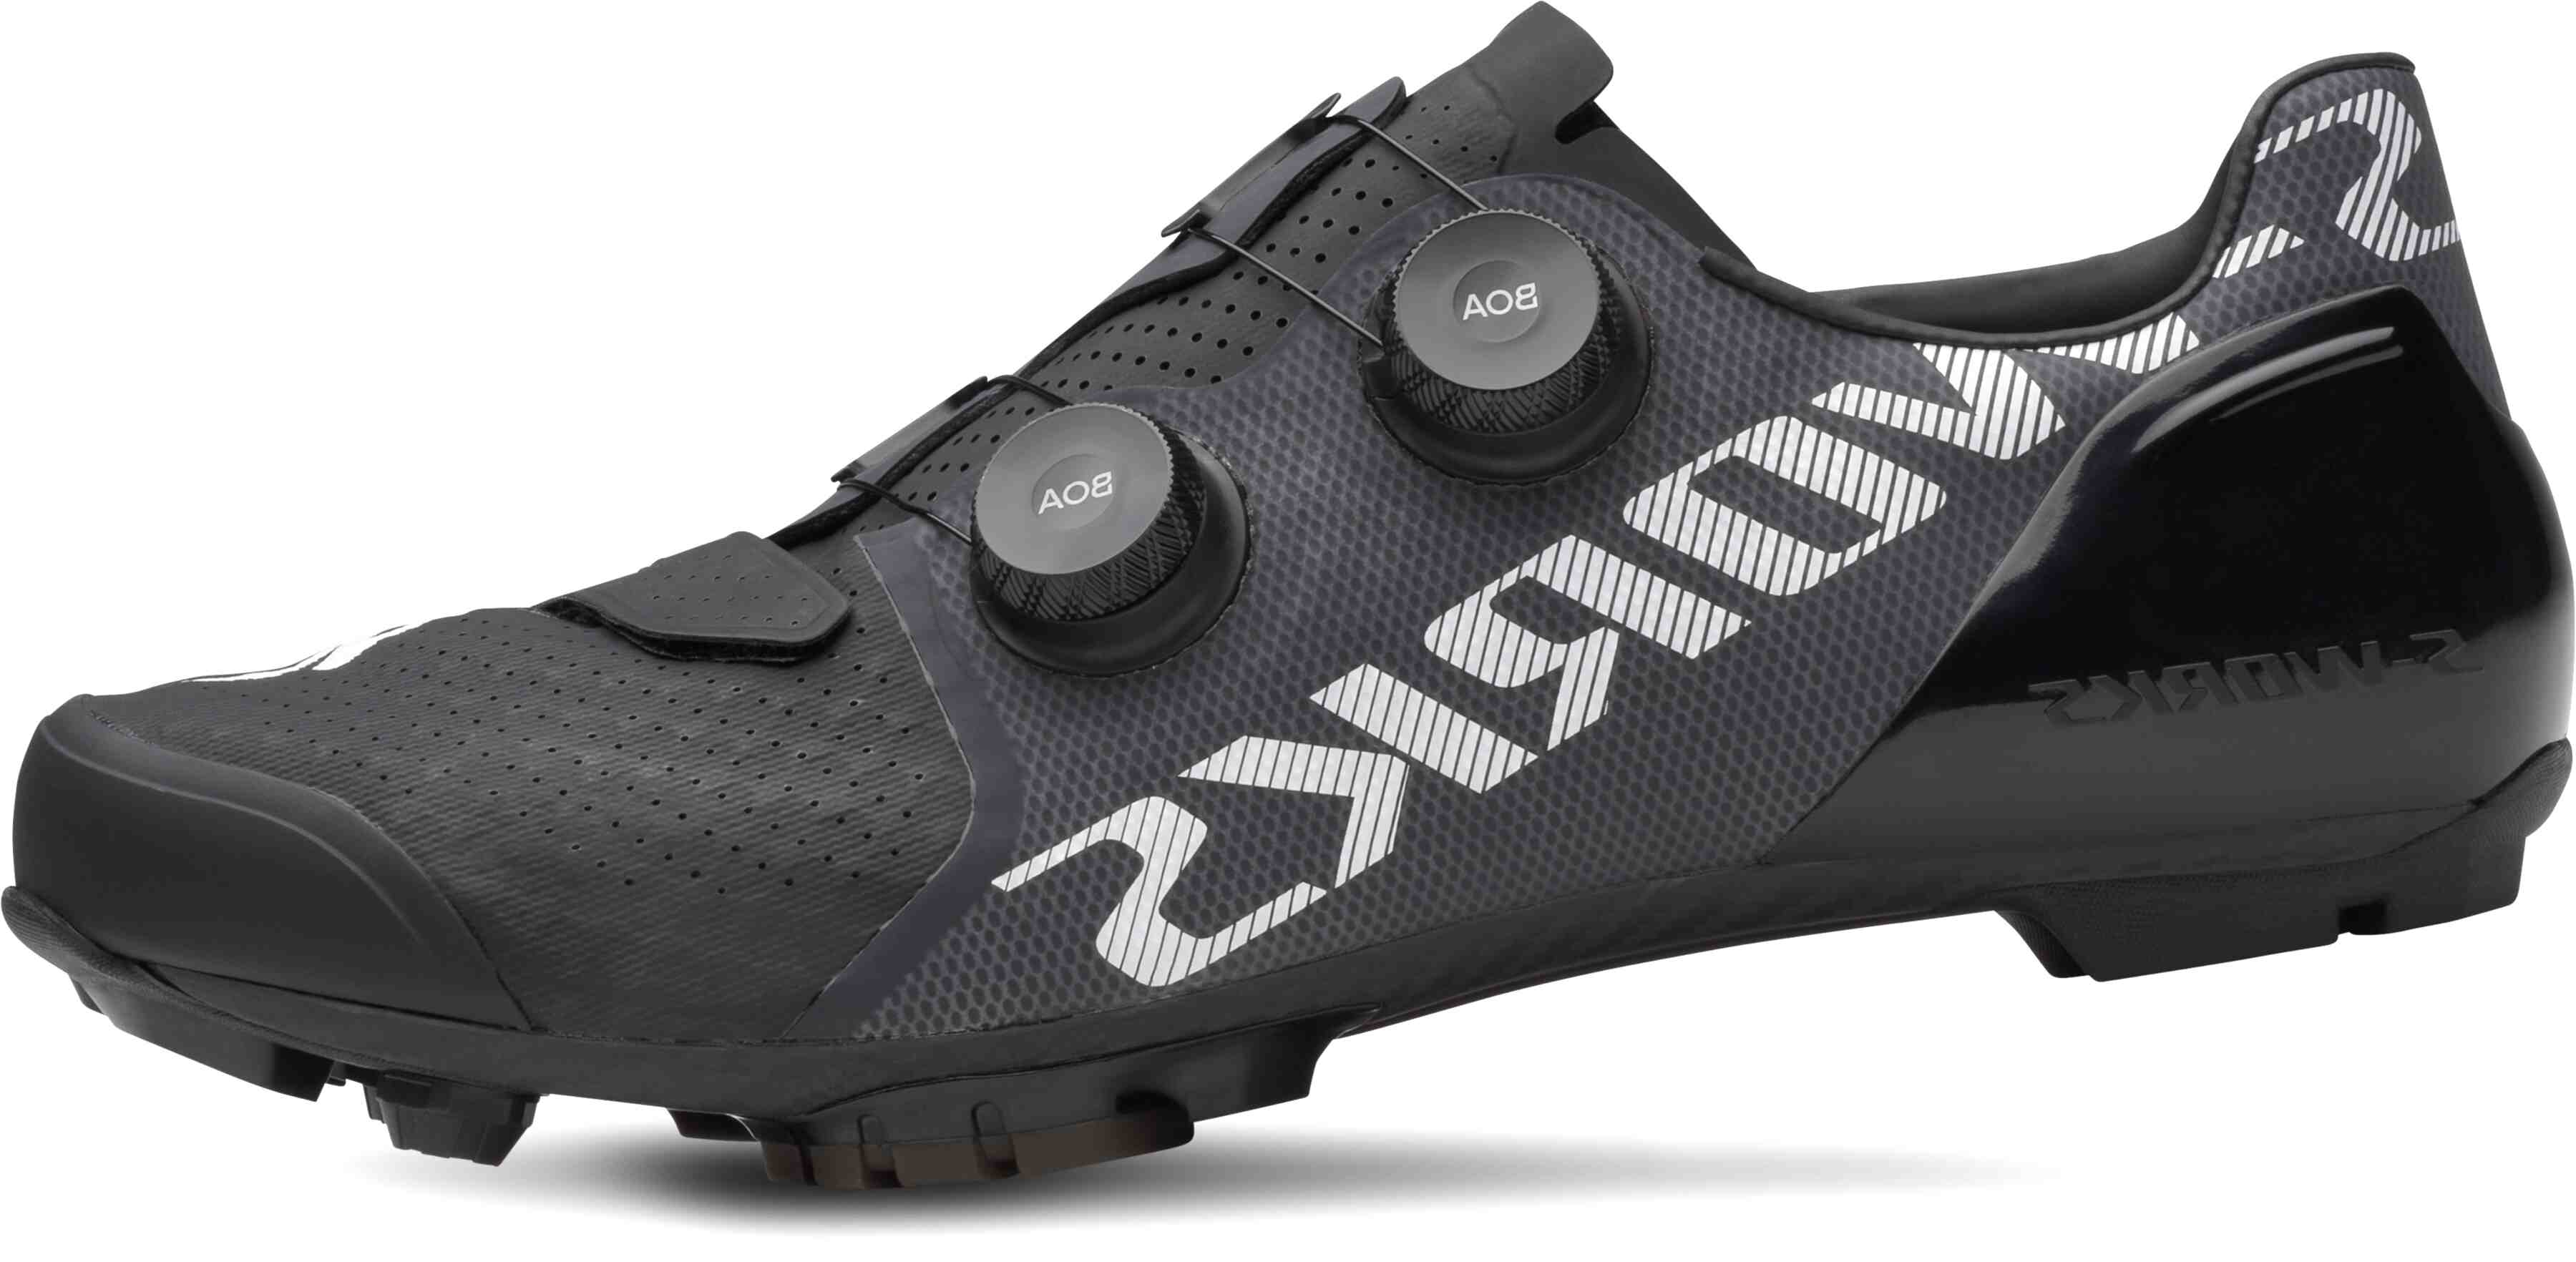 s works mtb shoes for sale